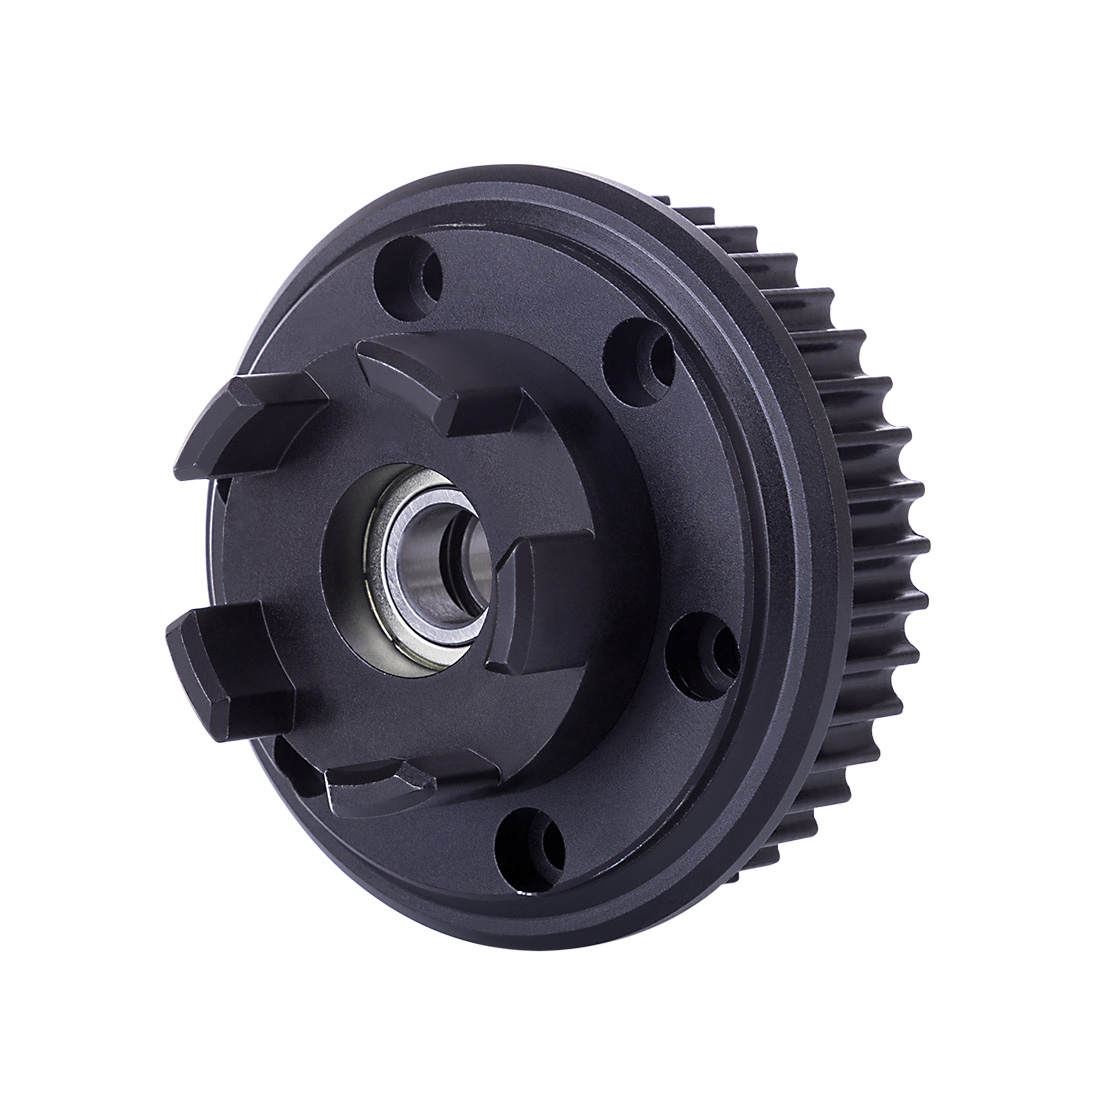 2Pcs/set 5M66T Synchronous Gear DIY Electric Skateboard Direct Drive Gear Adapter for 165/175 Rubber Wheel